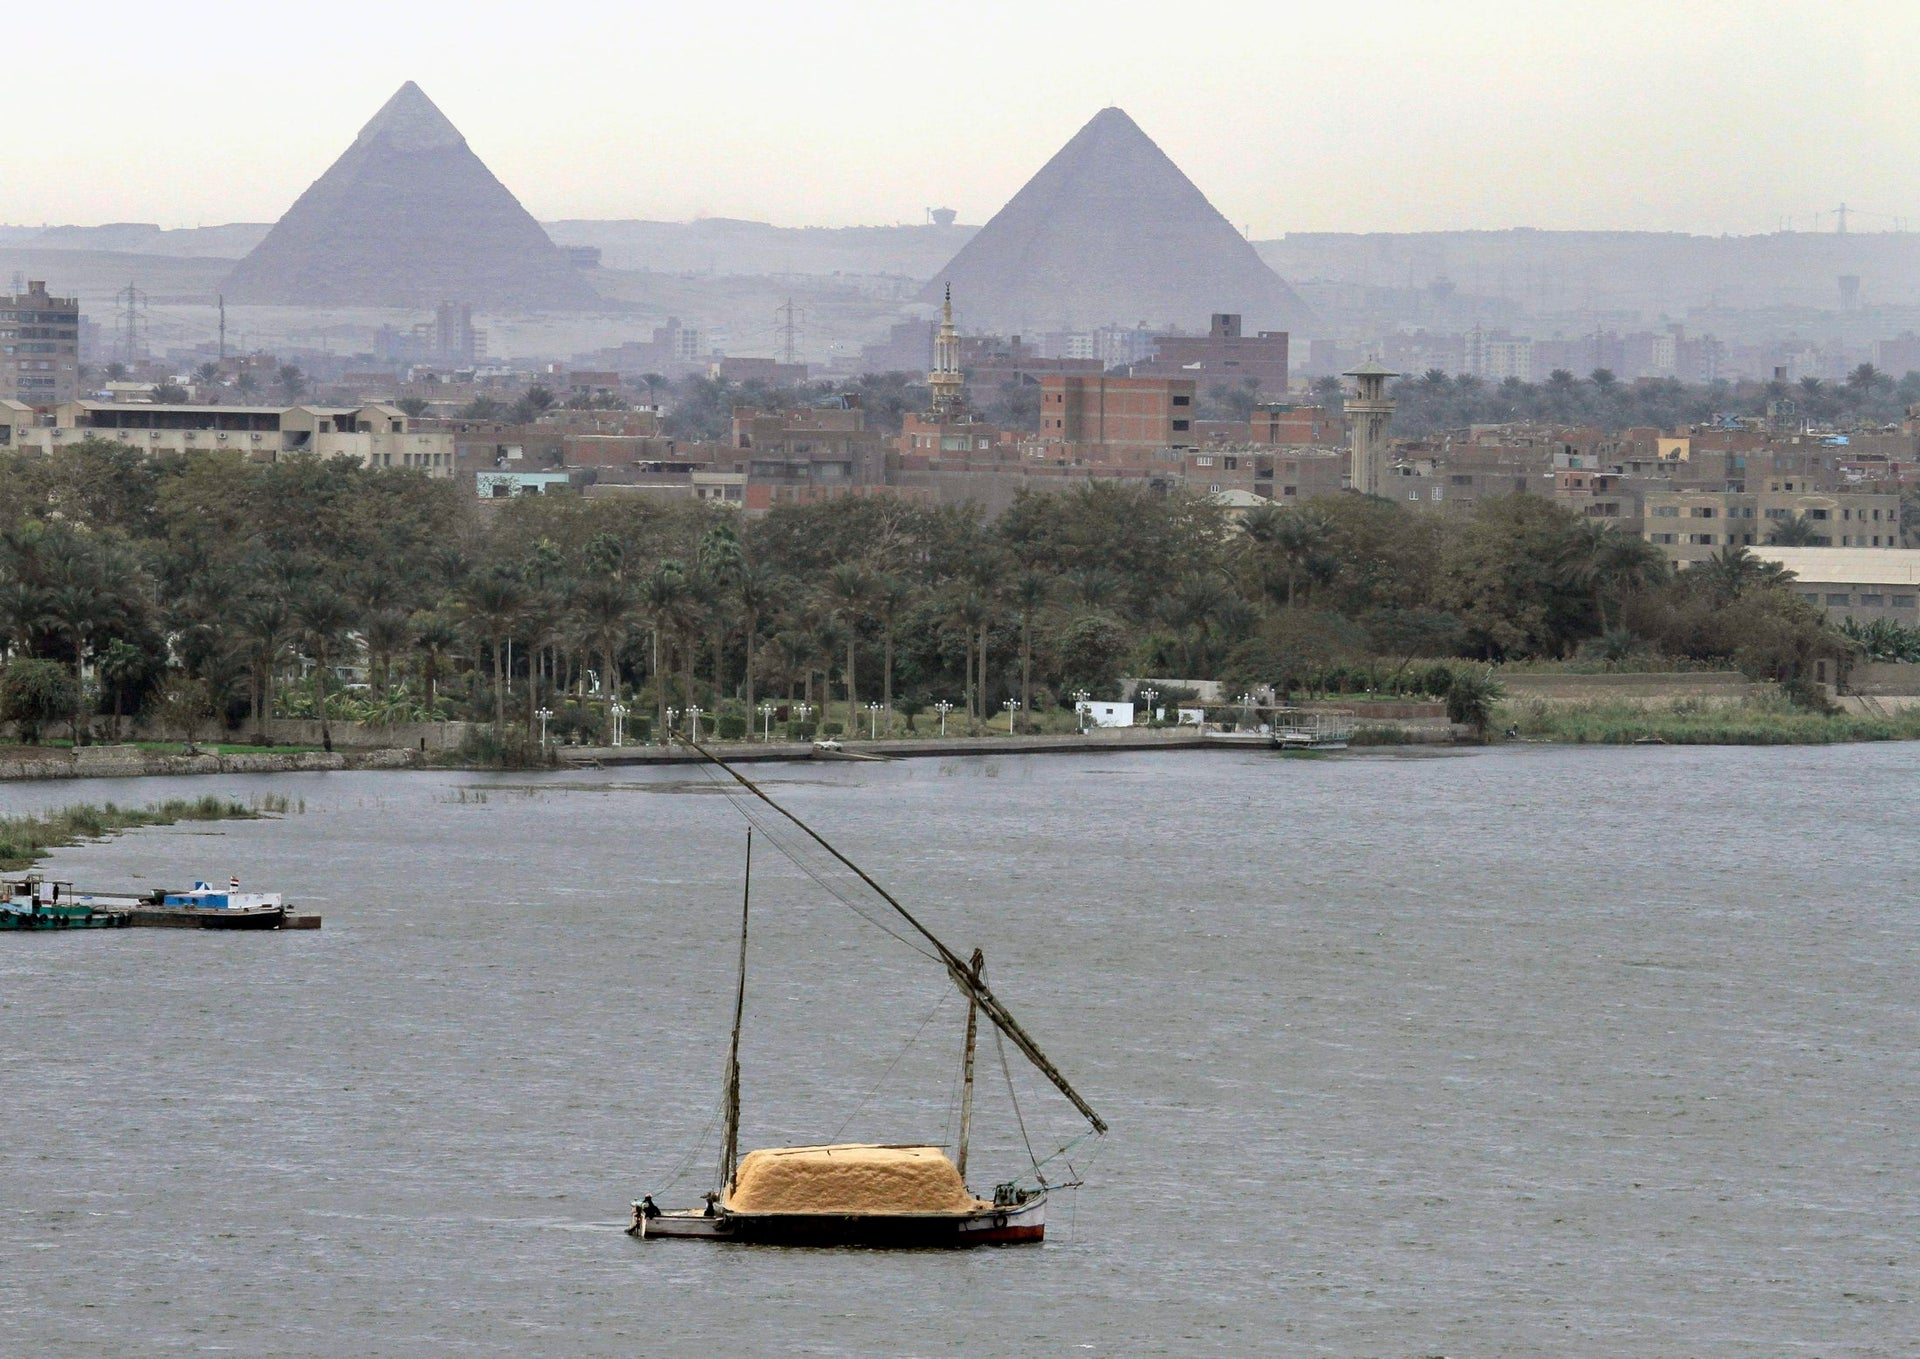 The Nile River, Cairo: A sailing boat carries a cargo of hay as it transits the Nile river passing the Pyramids of Giza in Cairo, Egypt